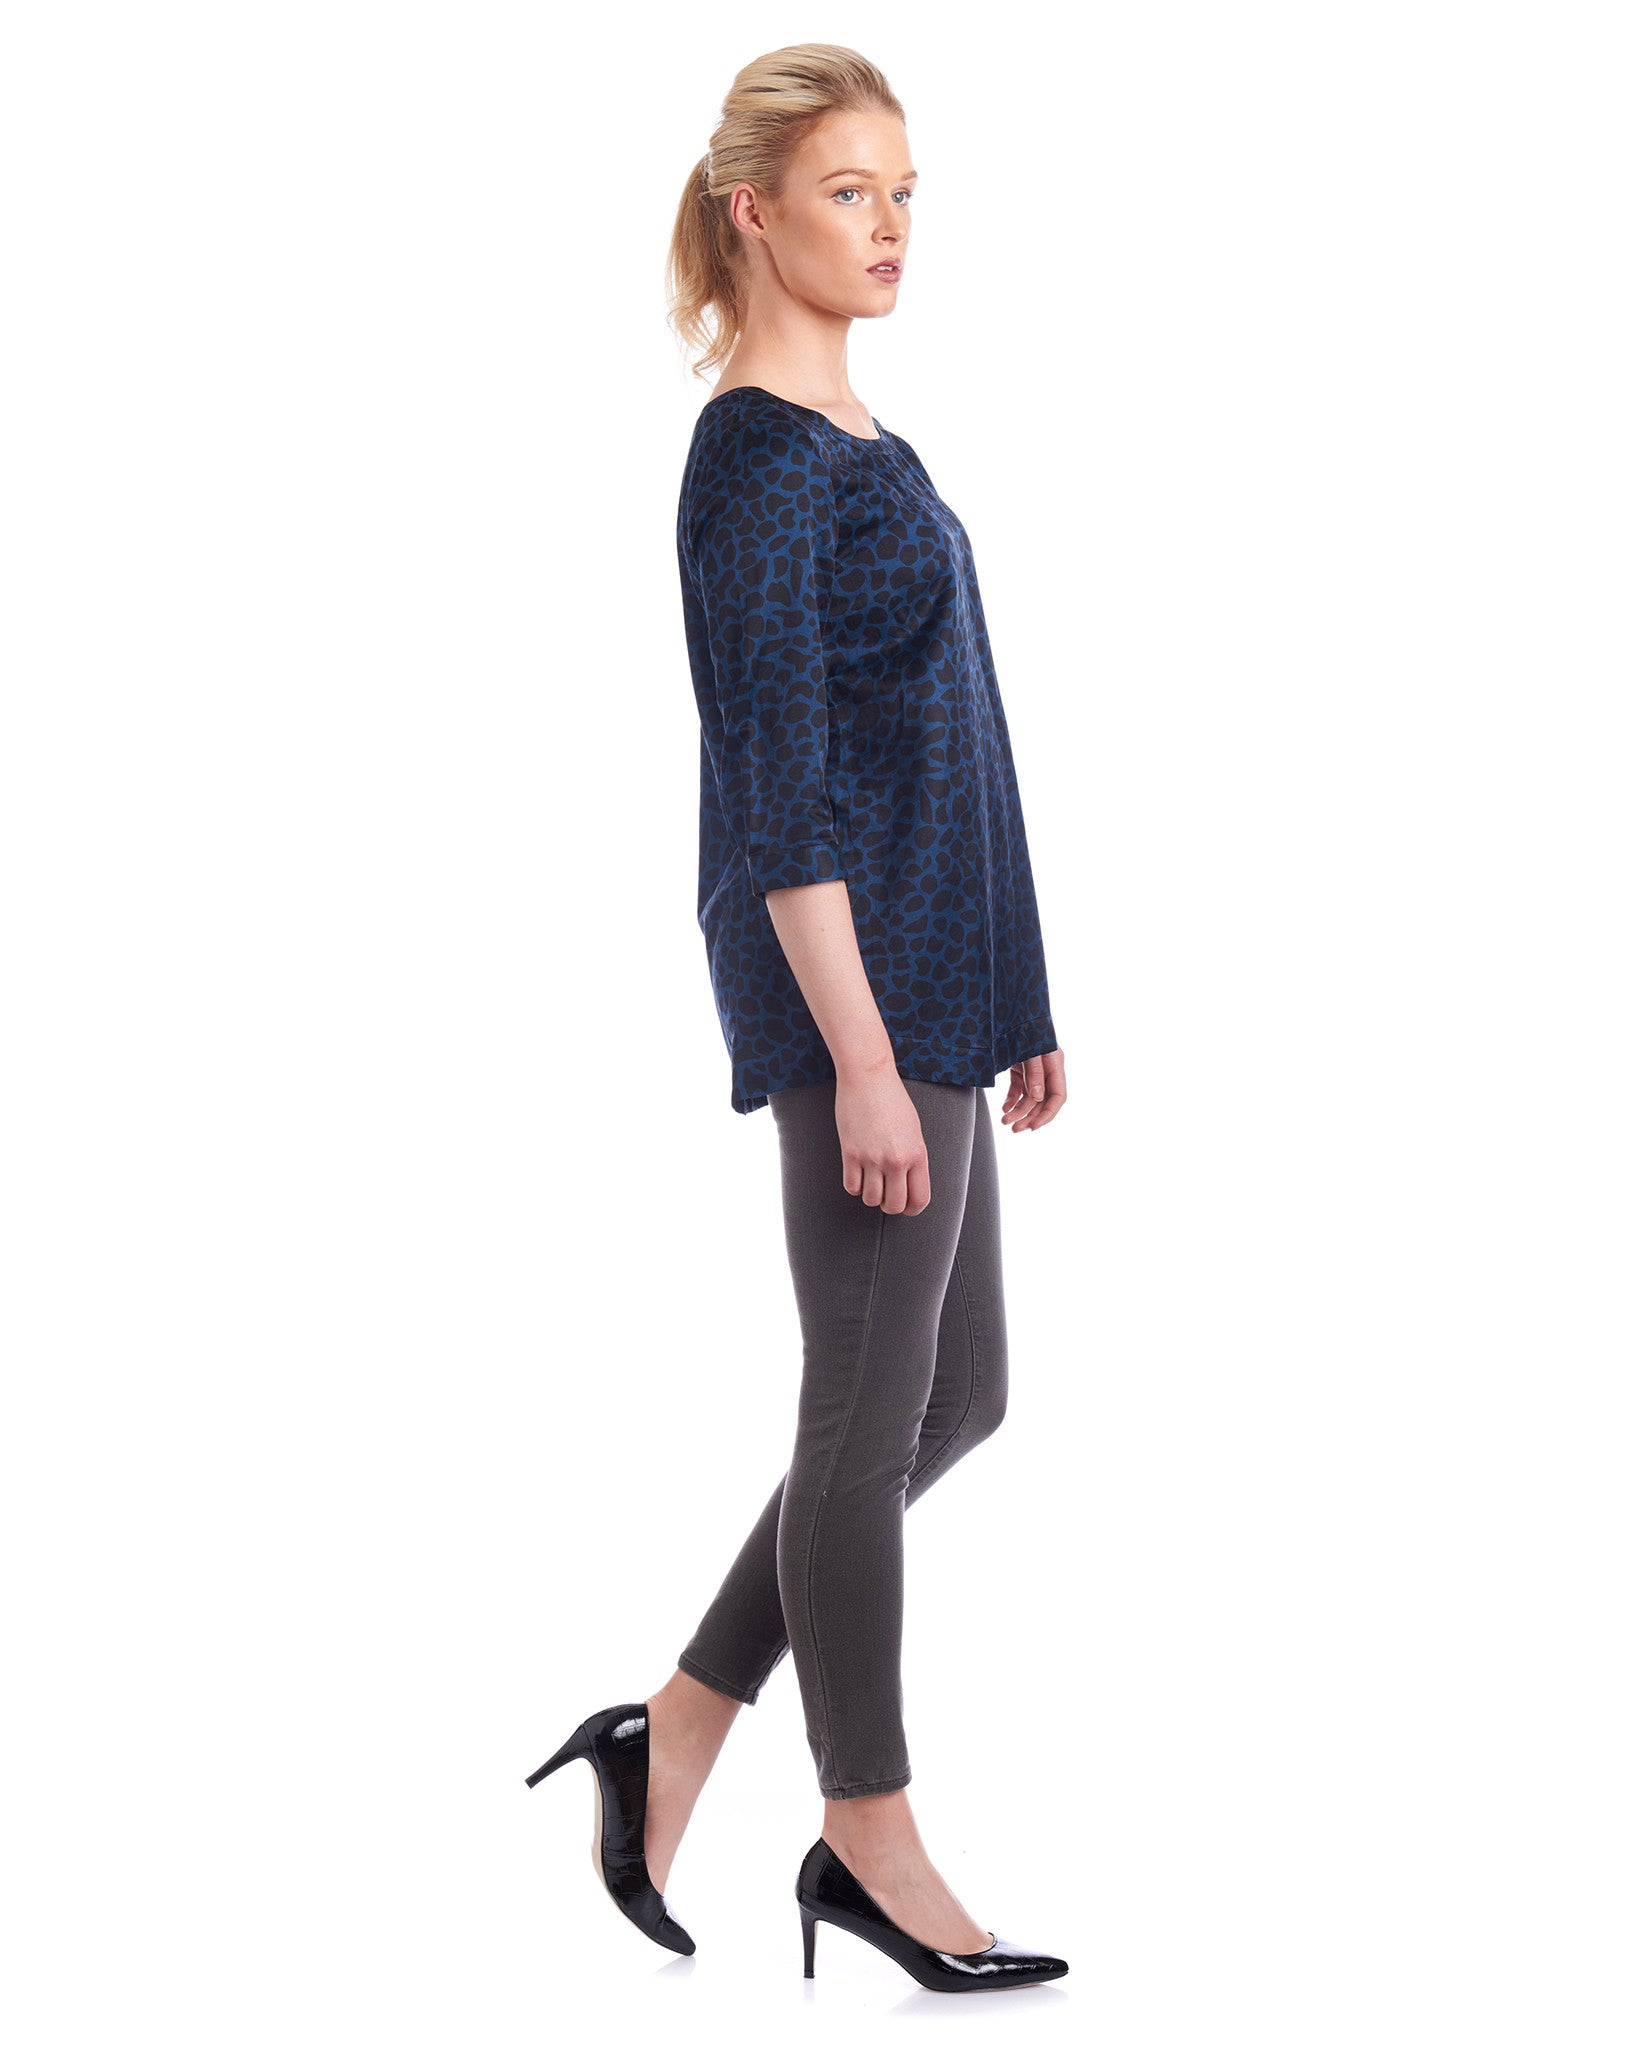 Tahlo's keyhole silk blouse can be work as a relaxed silhouette